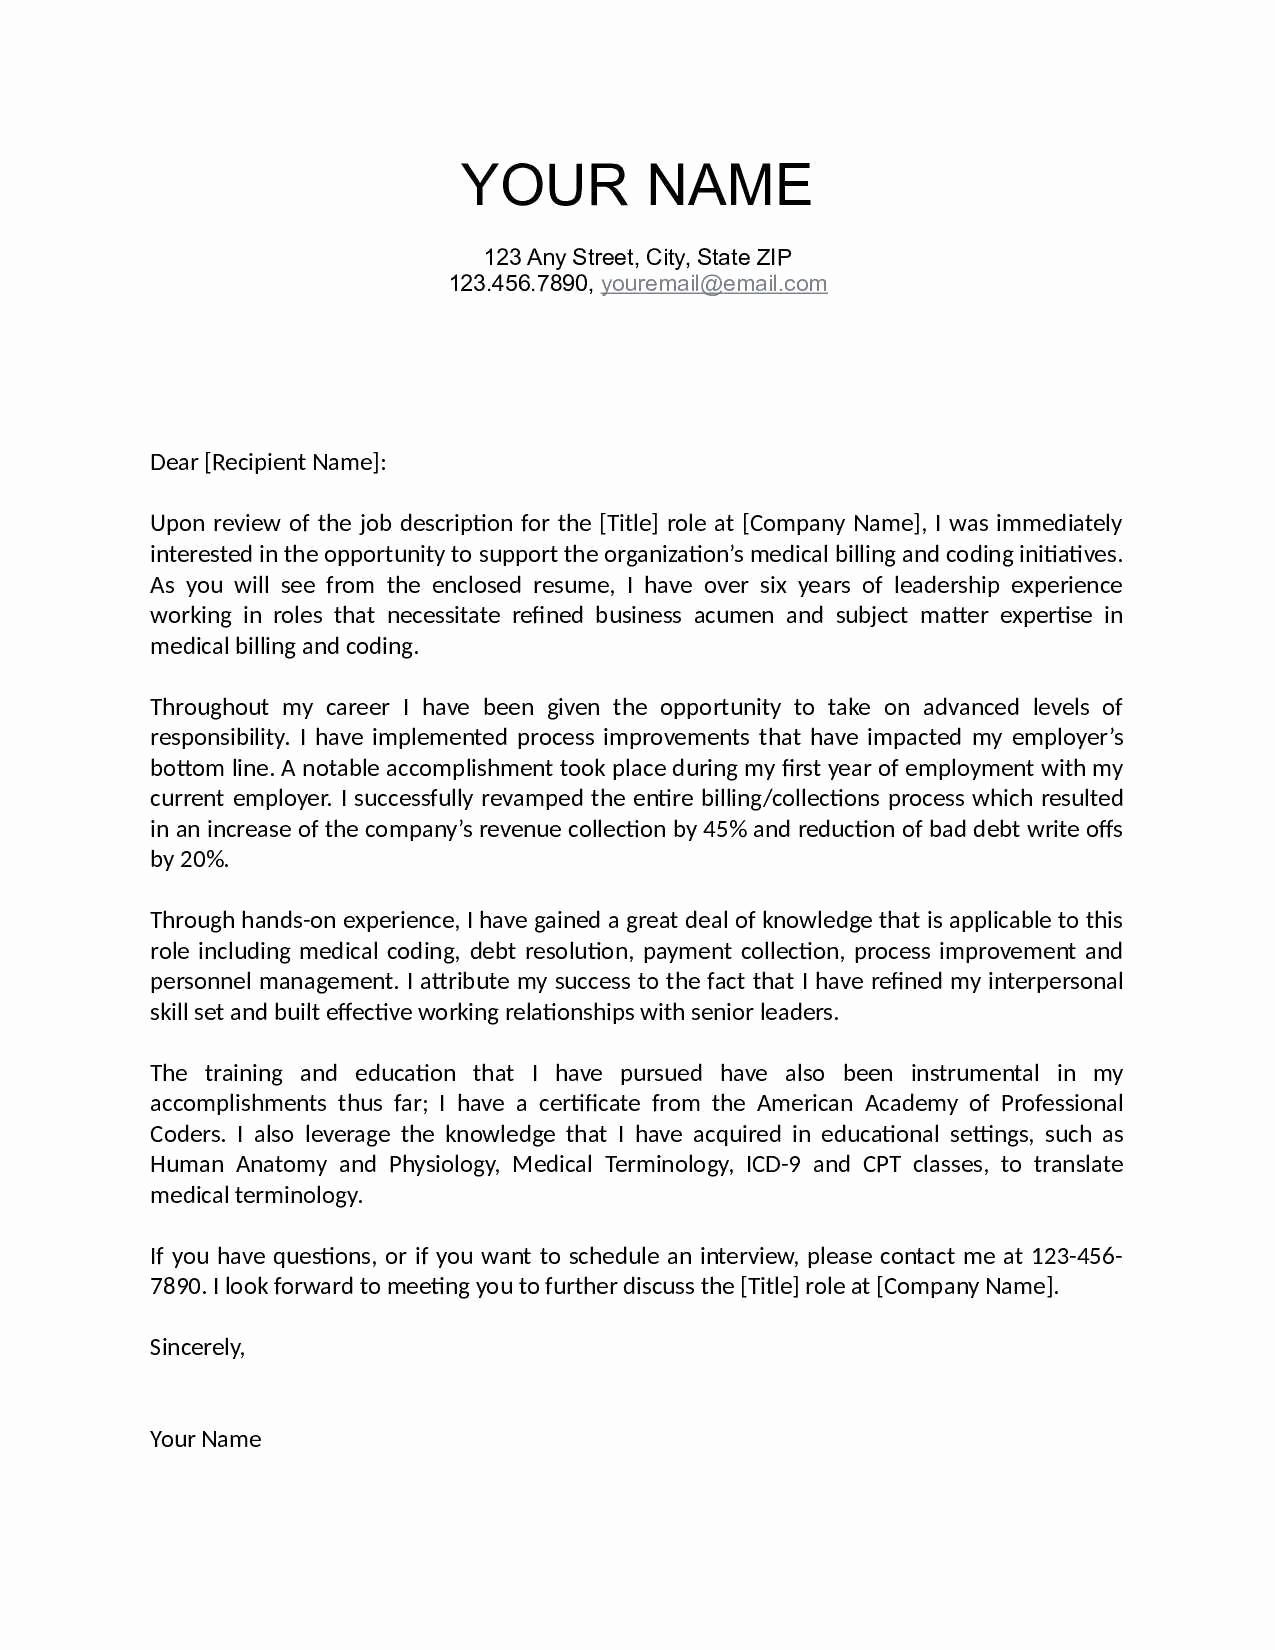 Cover Letter for Essay Template Examples | Letter Template Collection